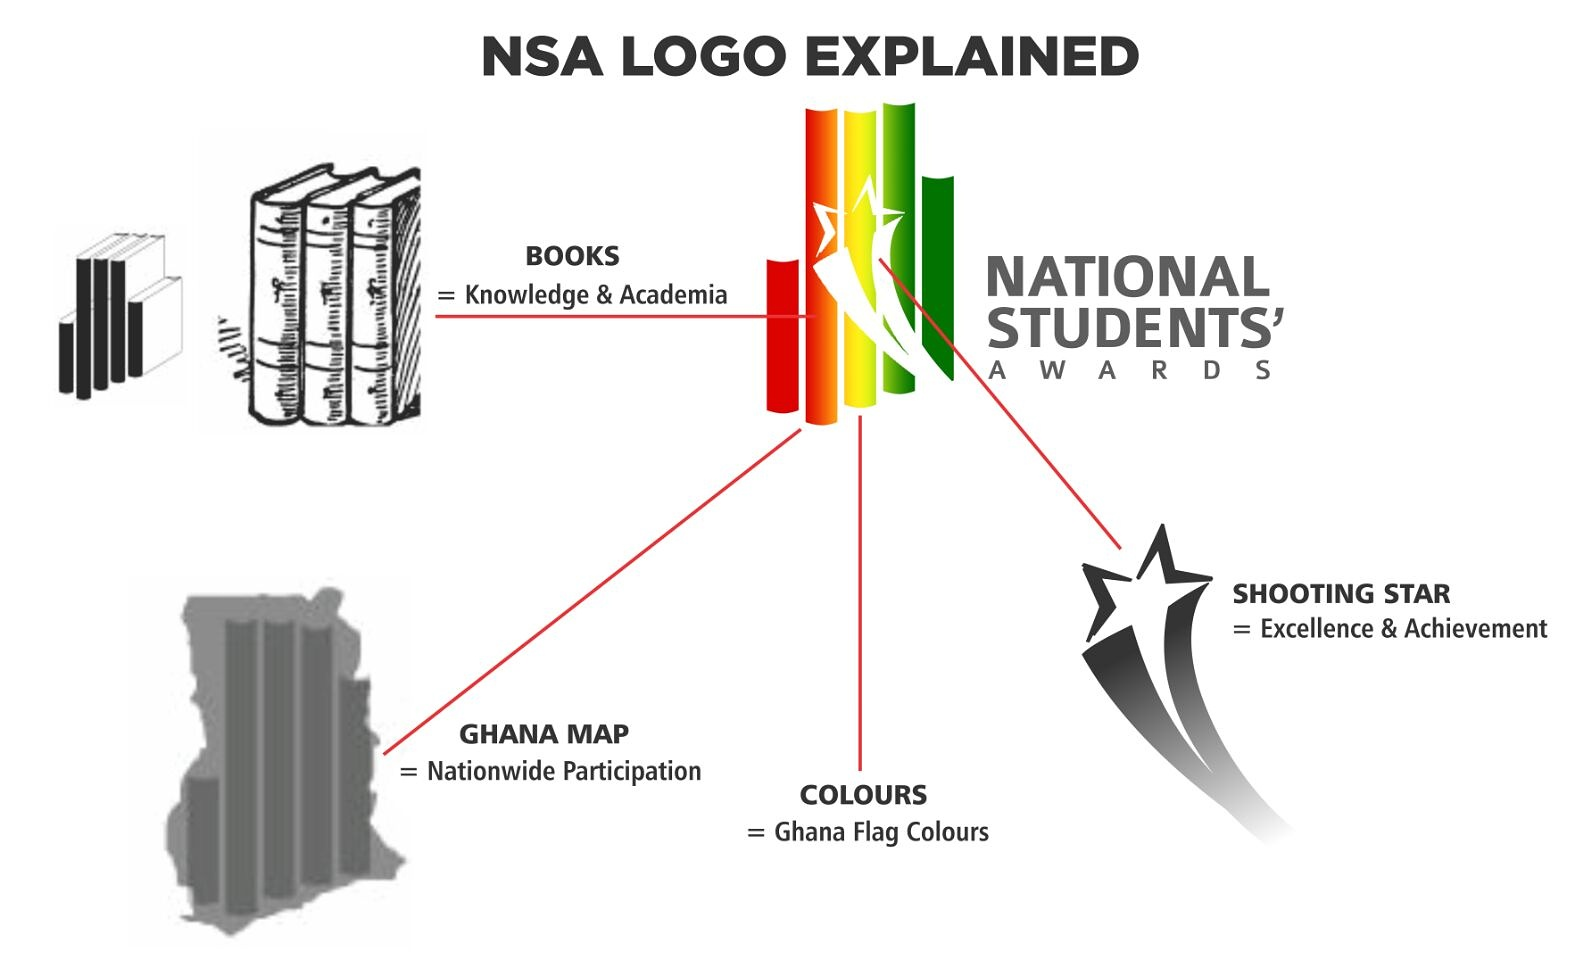 the national students awards of the republic of ghana is a flagship award scheme organised by the nsa ghana with support from student organisations in